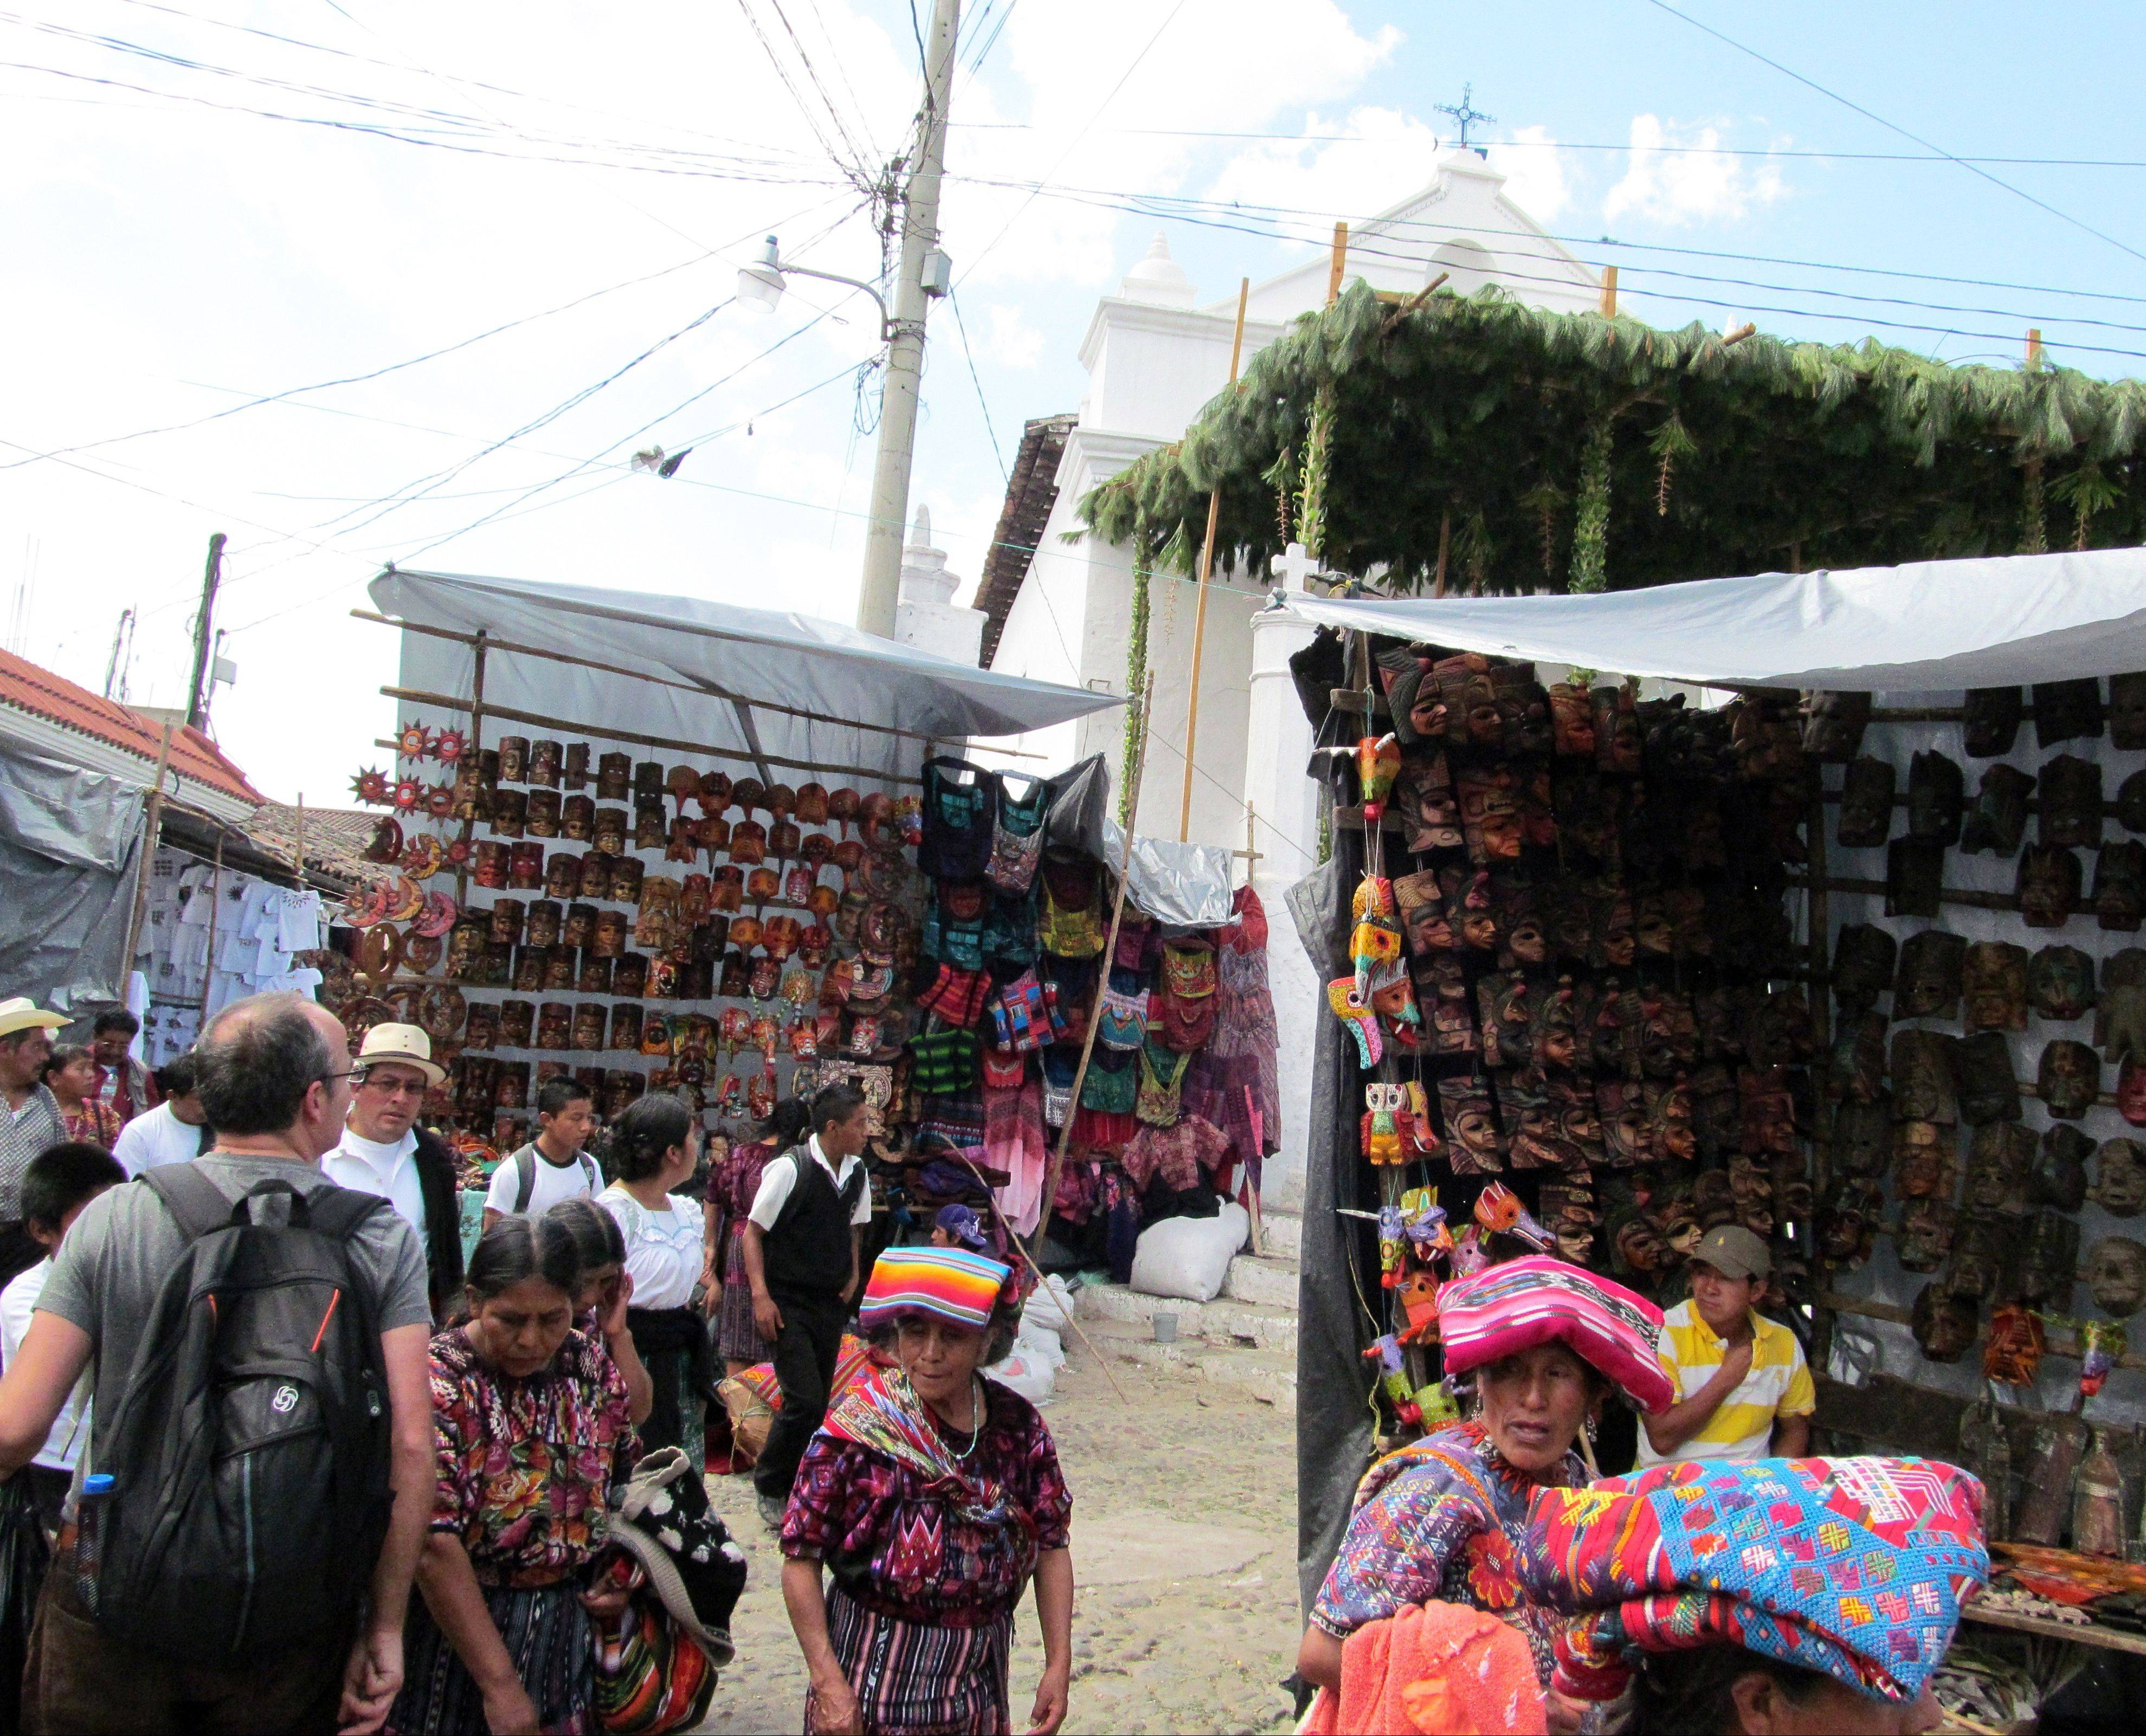 Mayan women sell colorful Guatemalan fabrics in front of market stalls in Chichicastenango, Guatemala. Chichicastenango is also famed for its expansive local crafts market.